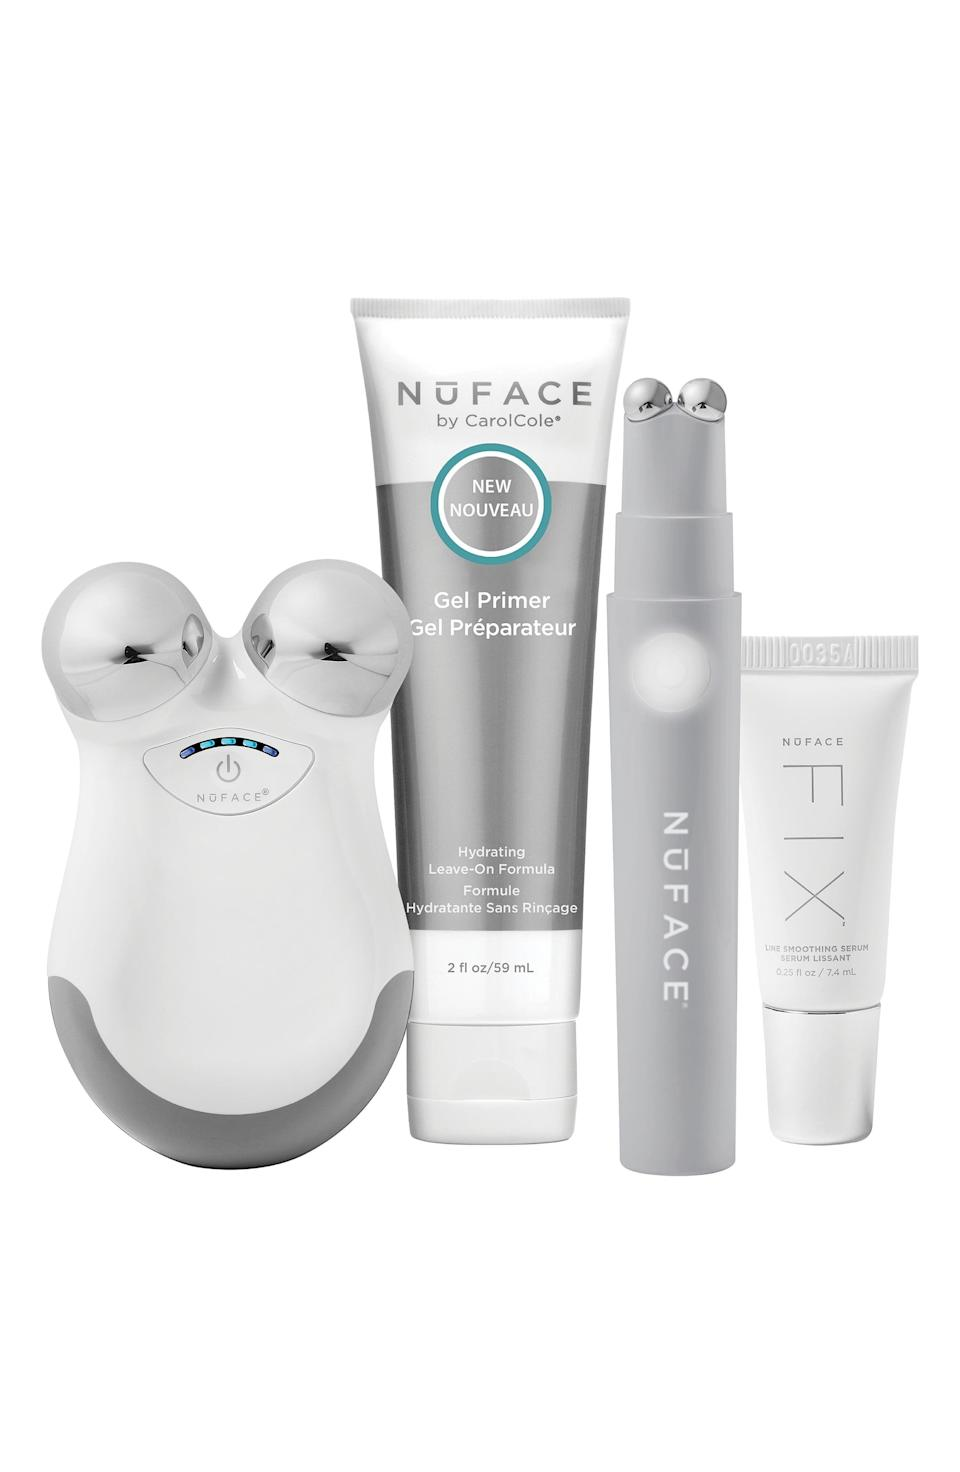 """<p><strong>NuFACE </strong></p><p>nordstrom.com</p><p><a href=""""https://go.redirectingat.com?id=74968X1596630&url=https%3A%2F%2Fwww.nordstrom.com%2Fs%2Fnuface-the-petite-facial-kit-358-value%2F5910263&sref=https%3A%2F%2Fwww.harpersbazaar.com%2Fbeauty%2Fg36991550%2Fnordstrom-anniversary-sale-beauty-deals%2F"""" rel=""""nofollow noopener"""" target=""""_blank"""" data-ylk=""""slk:Shop Now"""" class=""""link rapid-noclick-resp"""">Shop Now</a></p><p><strong>Sale: $219</strong></p><p><strong>Value: $358</strong></p><p>NuFACE's award-winning facial toning device sends micro-currents through the skin, which helps boost collagen and lift muscle, effectively creating a more tightened appearance. The device requires frequent use for a noticeable transformation, but many users (<a href=""""https://www.harpersbazaar.com.au/beauty/best-skin-care-tools-devices-16072"""" rel=""""nofollow noopener"""" target=""""_blank"""" data-ylk=""""slk:Jennifer Aniston"""" class=""""link rapid-noclick-resp"""">Jennifer Aniston</a> included) praise the results. </p>"""